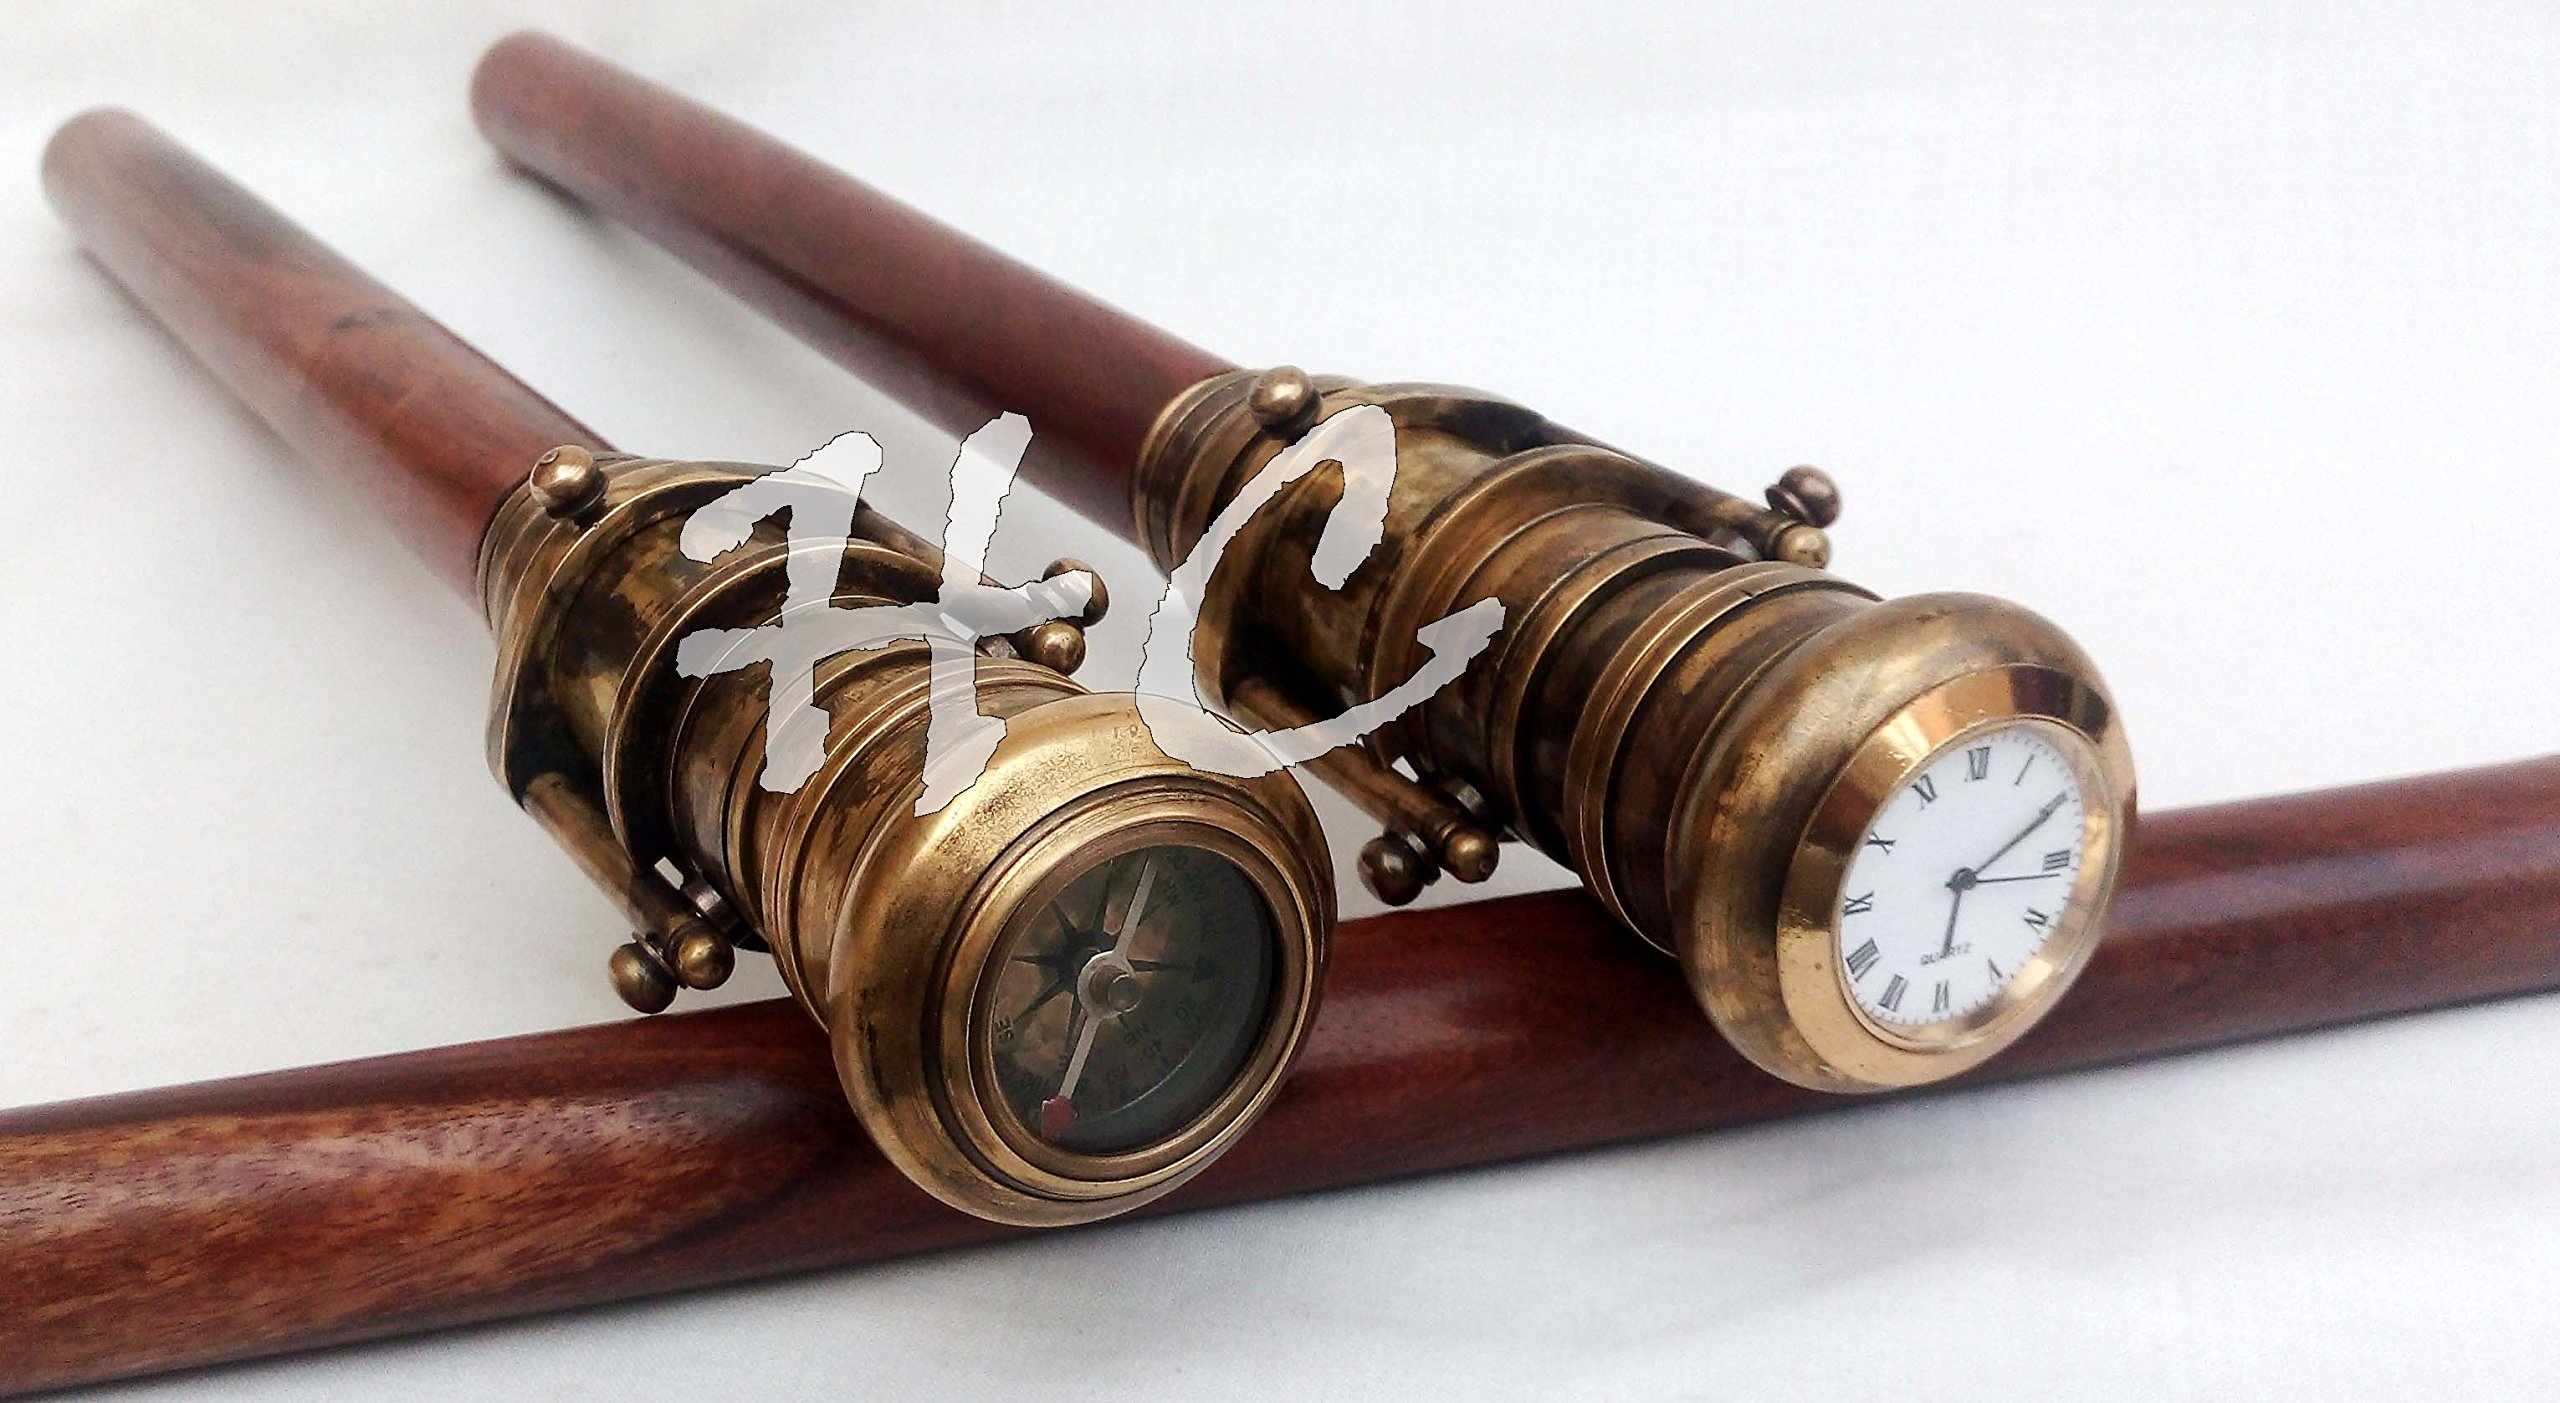 Set of Two Antique Telescope Walking Stick-Cane With Brass Compass/Clock Handle by Hanzlacollection